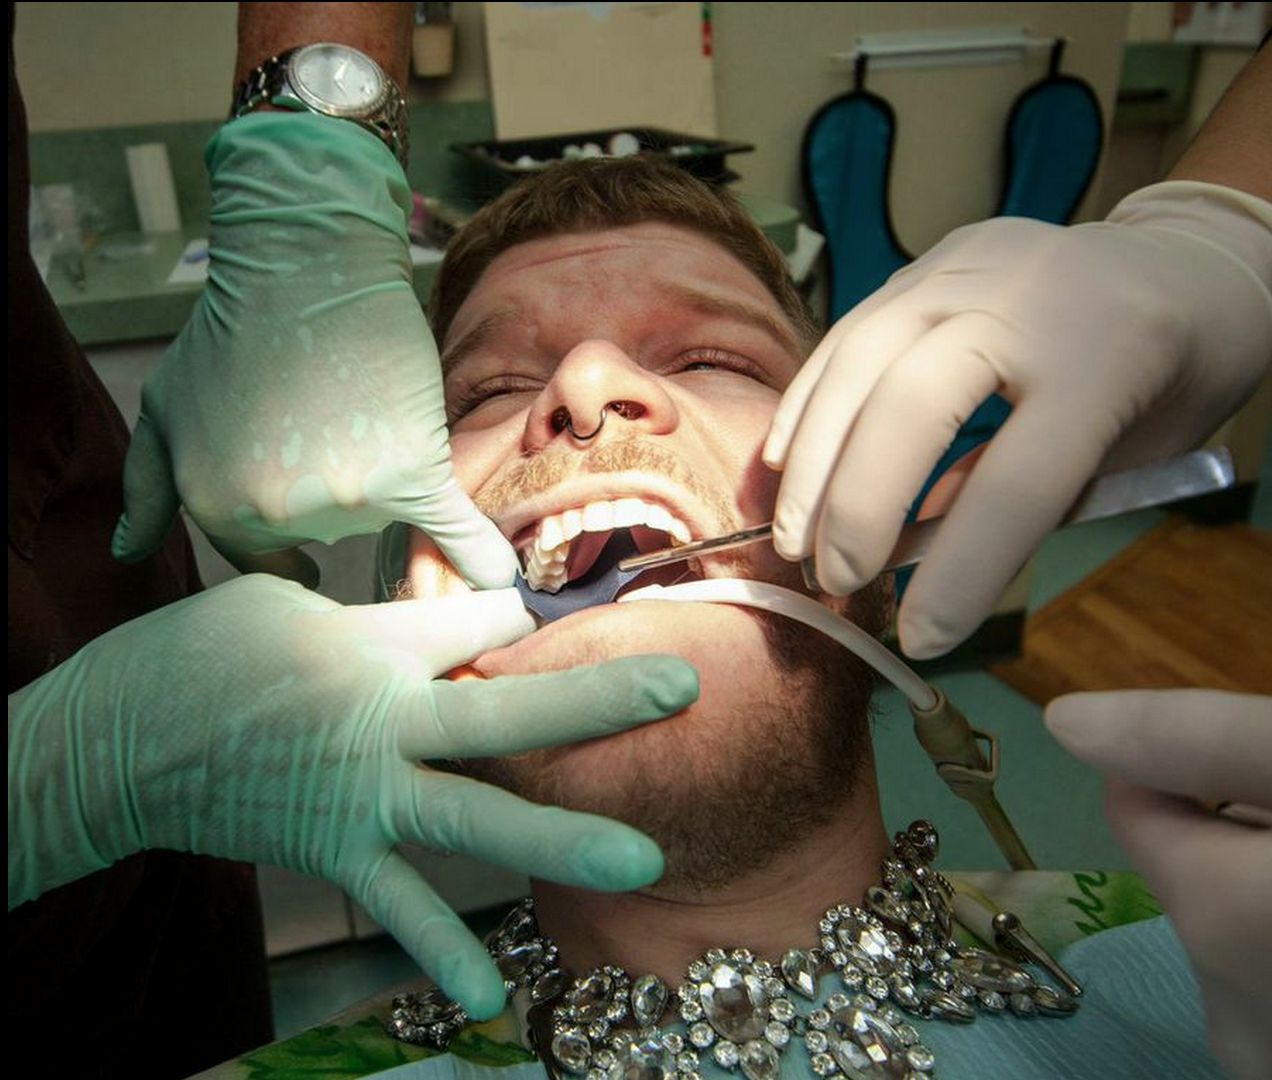 Dental fetish picture